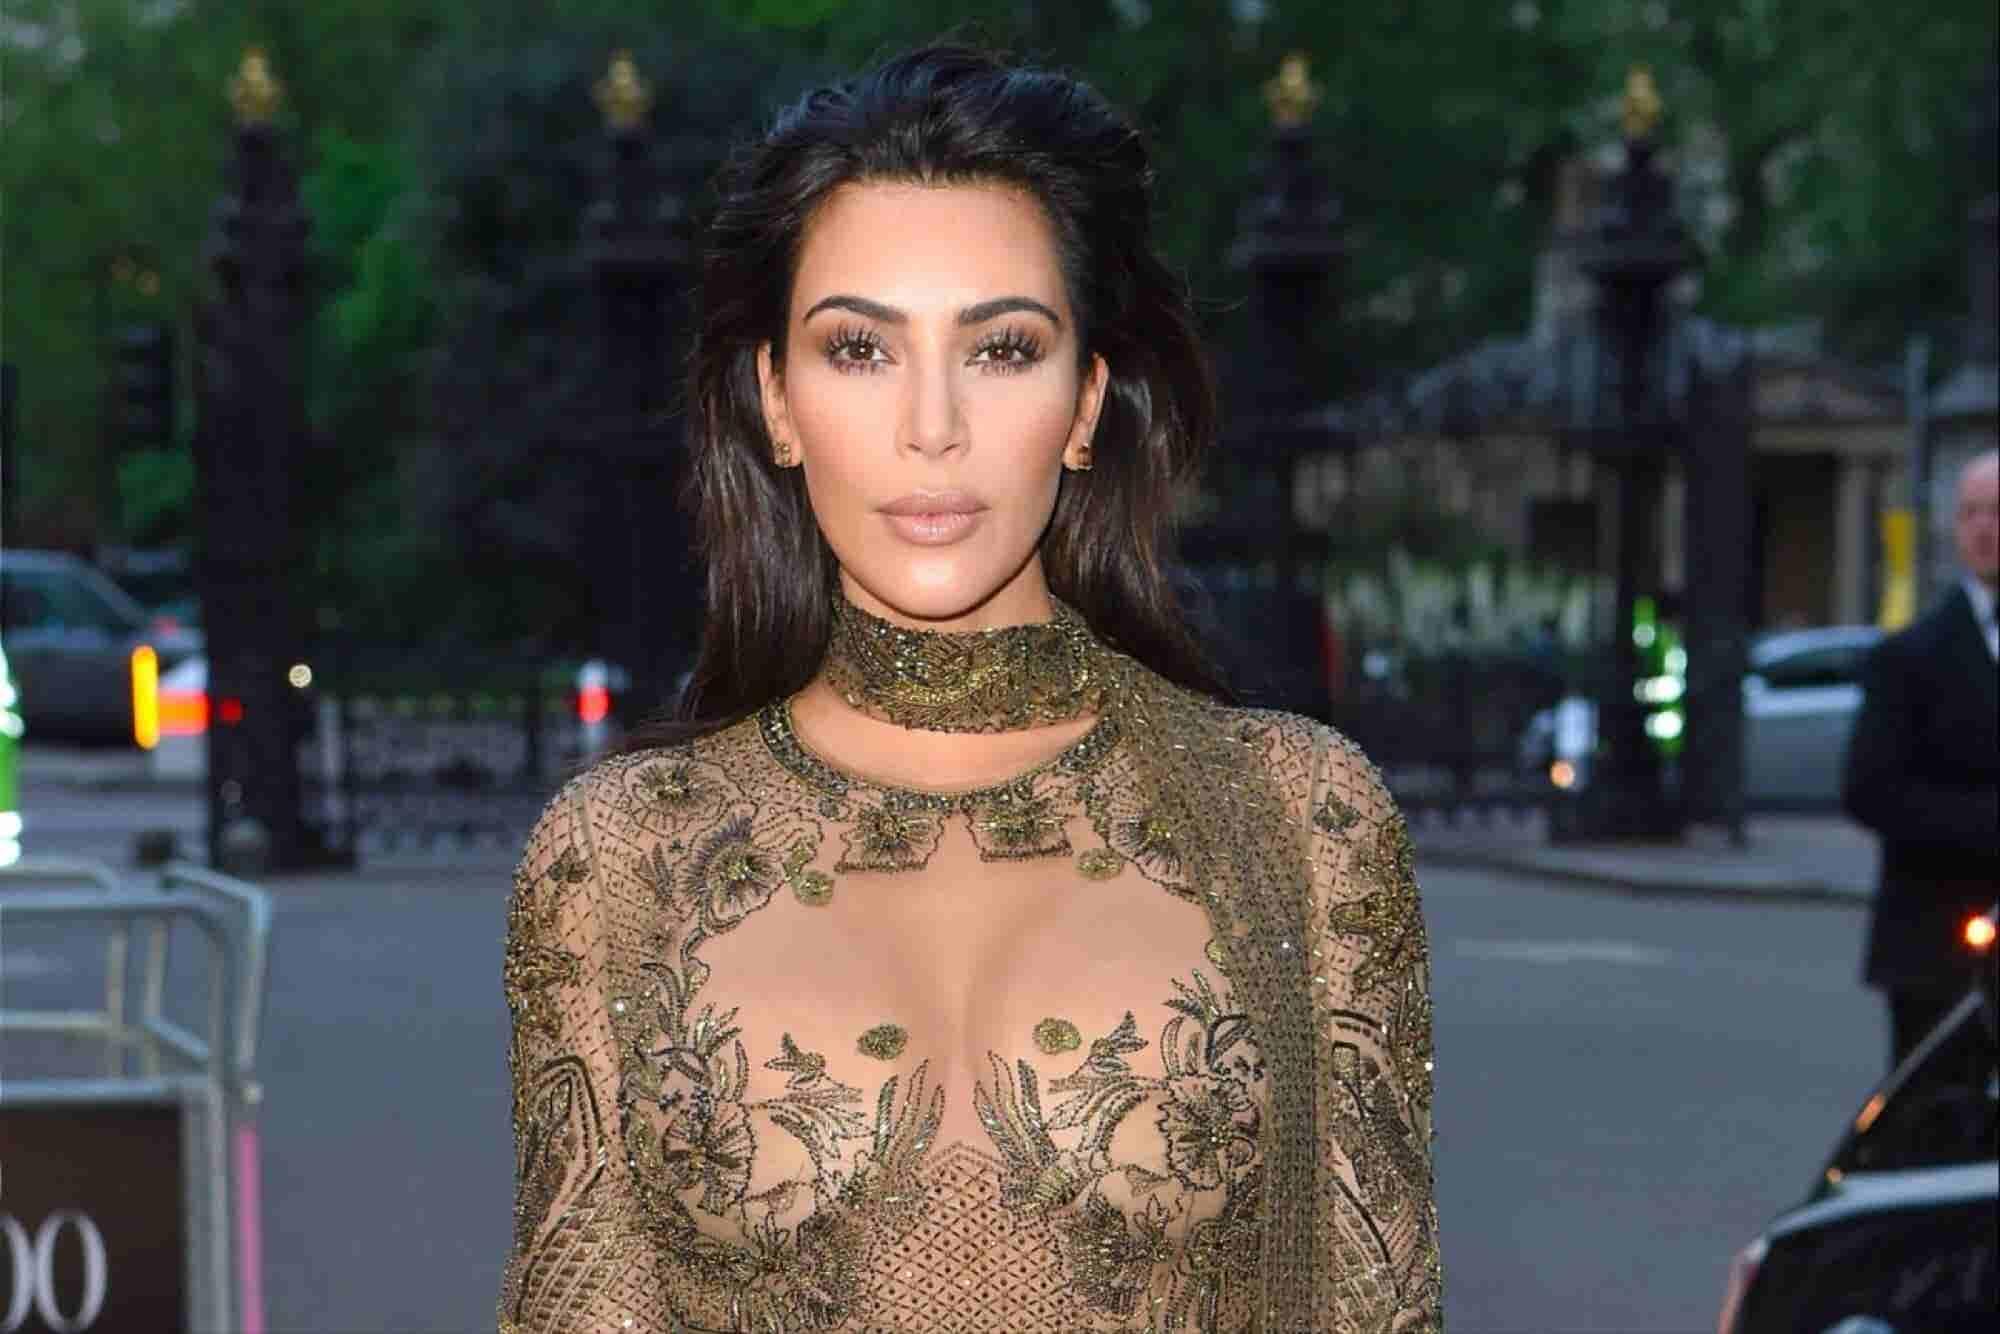 Did Kim Kardashian West Just Correctly Declare the Death of 'Big Computers'?